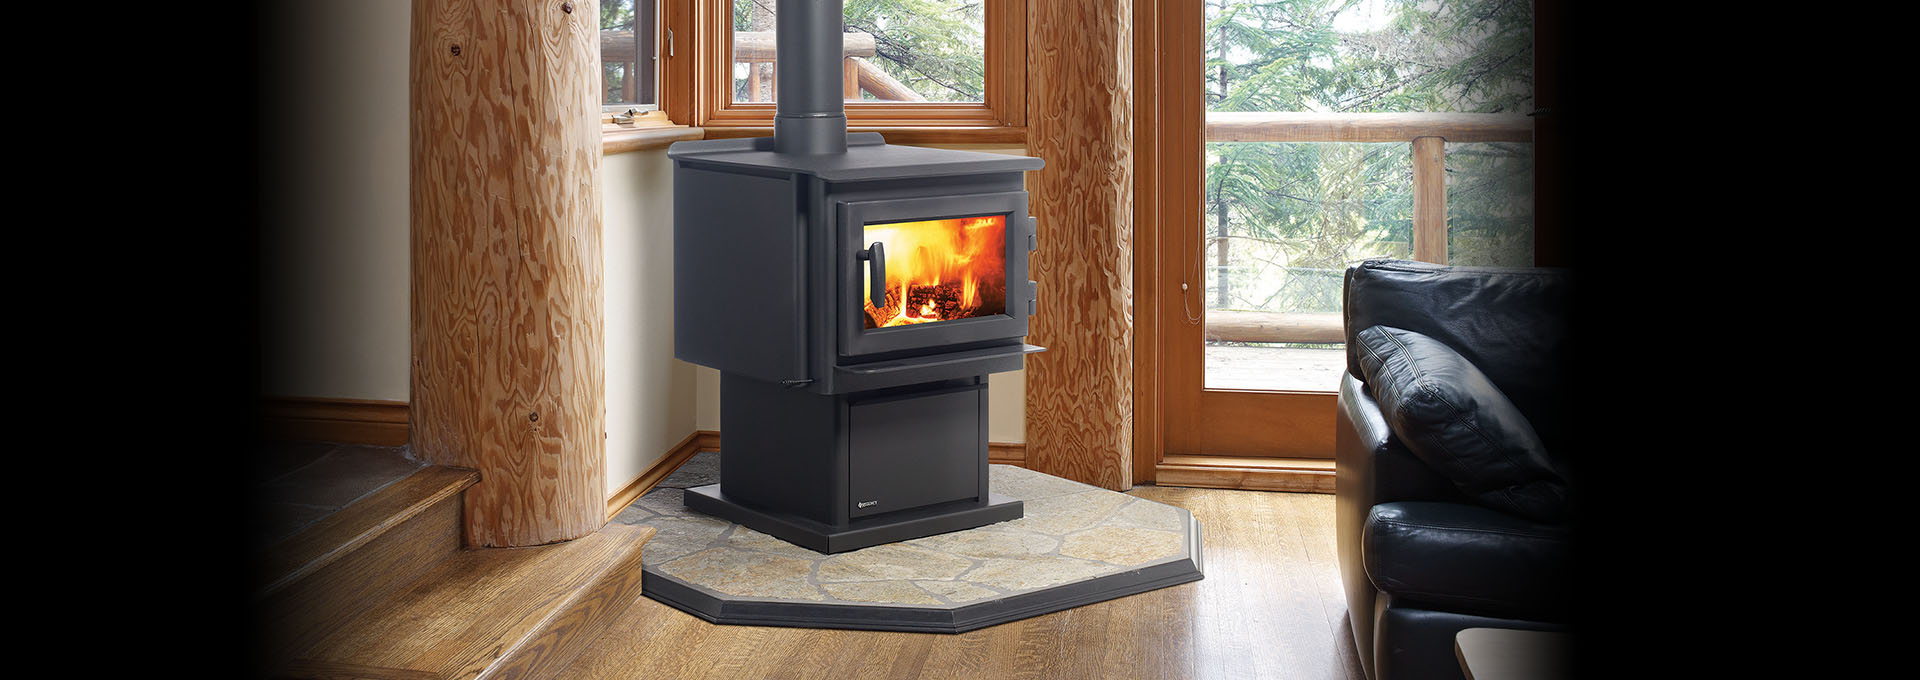 in napoleon chimney wood itm ft insert burning fireplace s liner ebay kit x